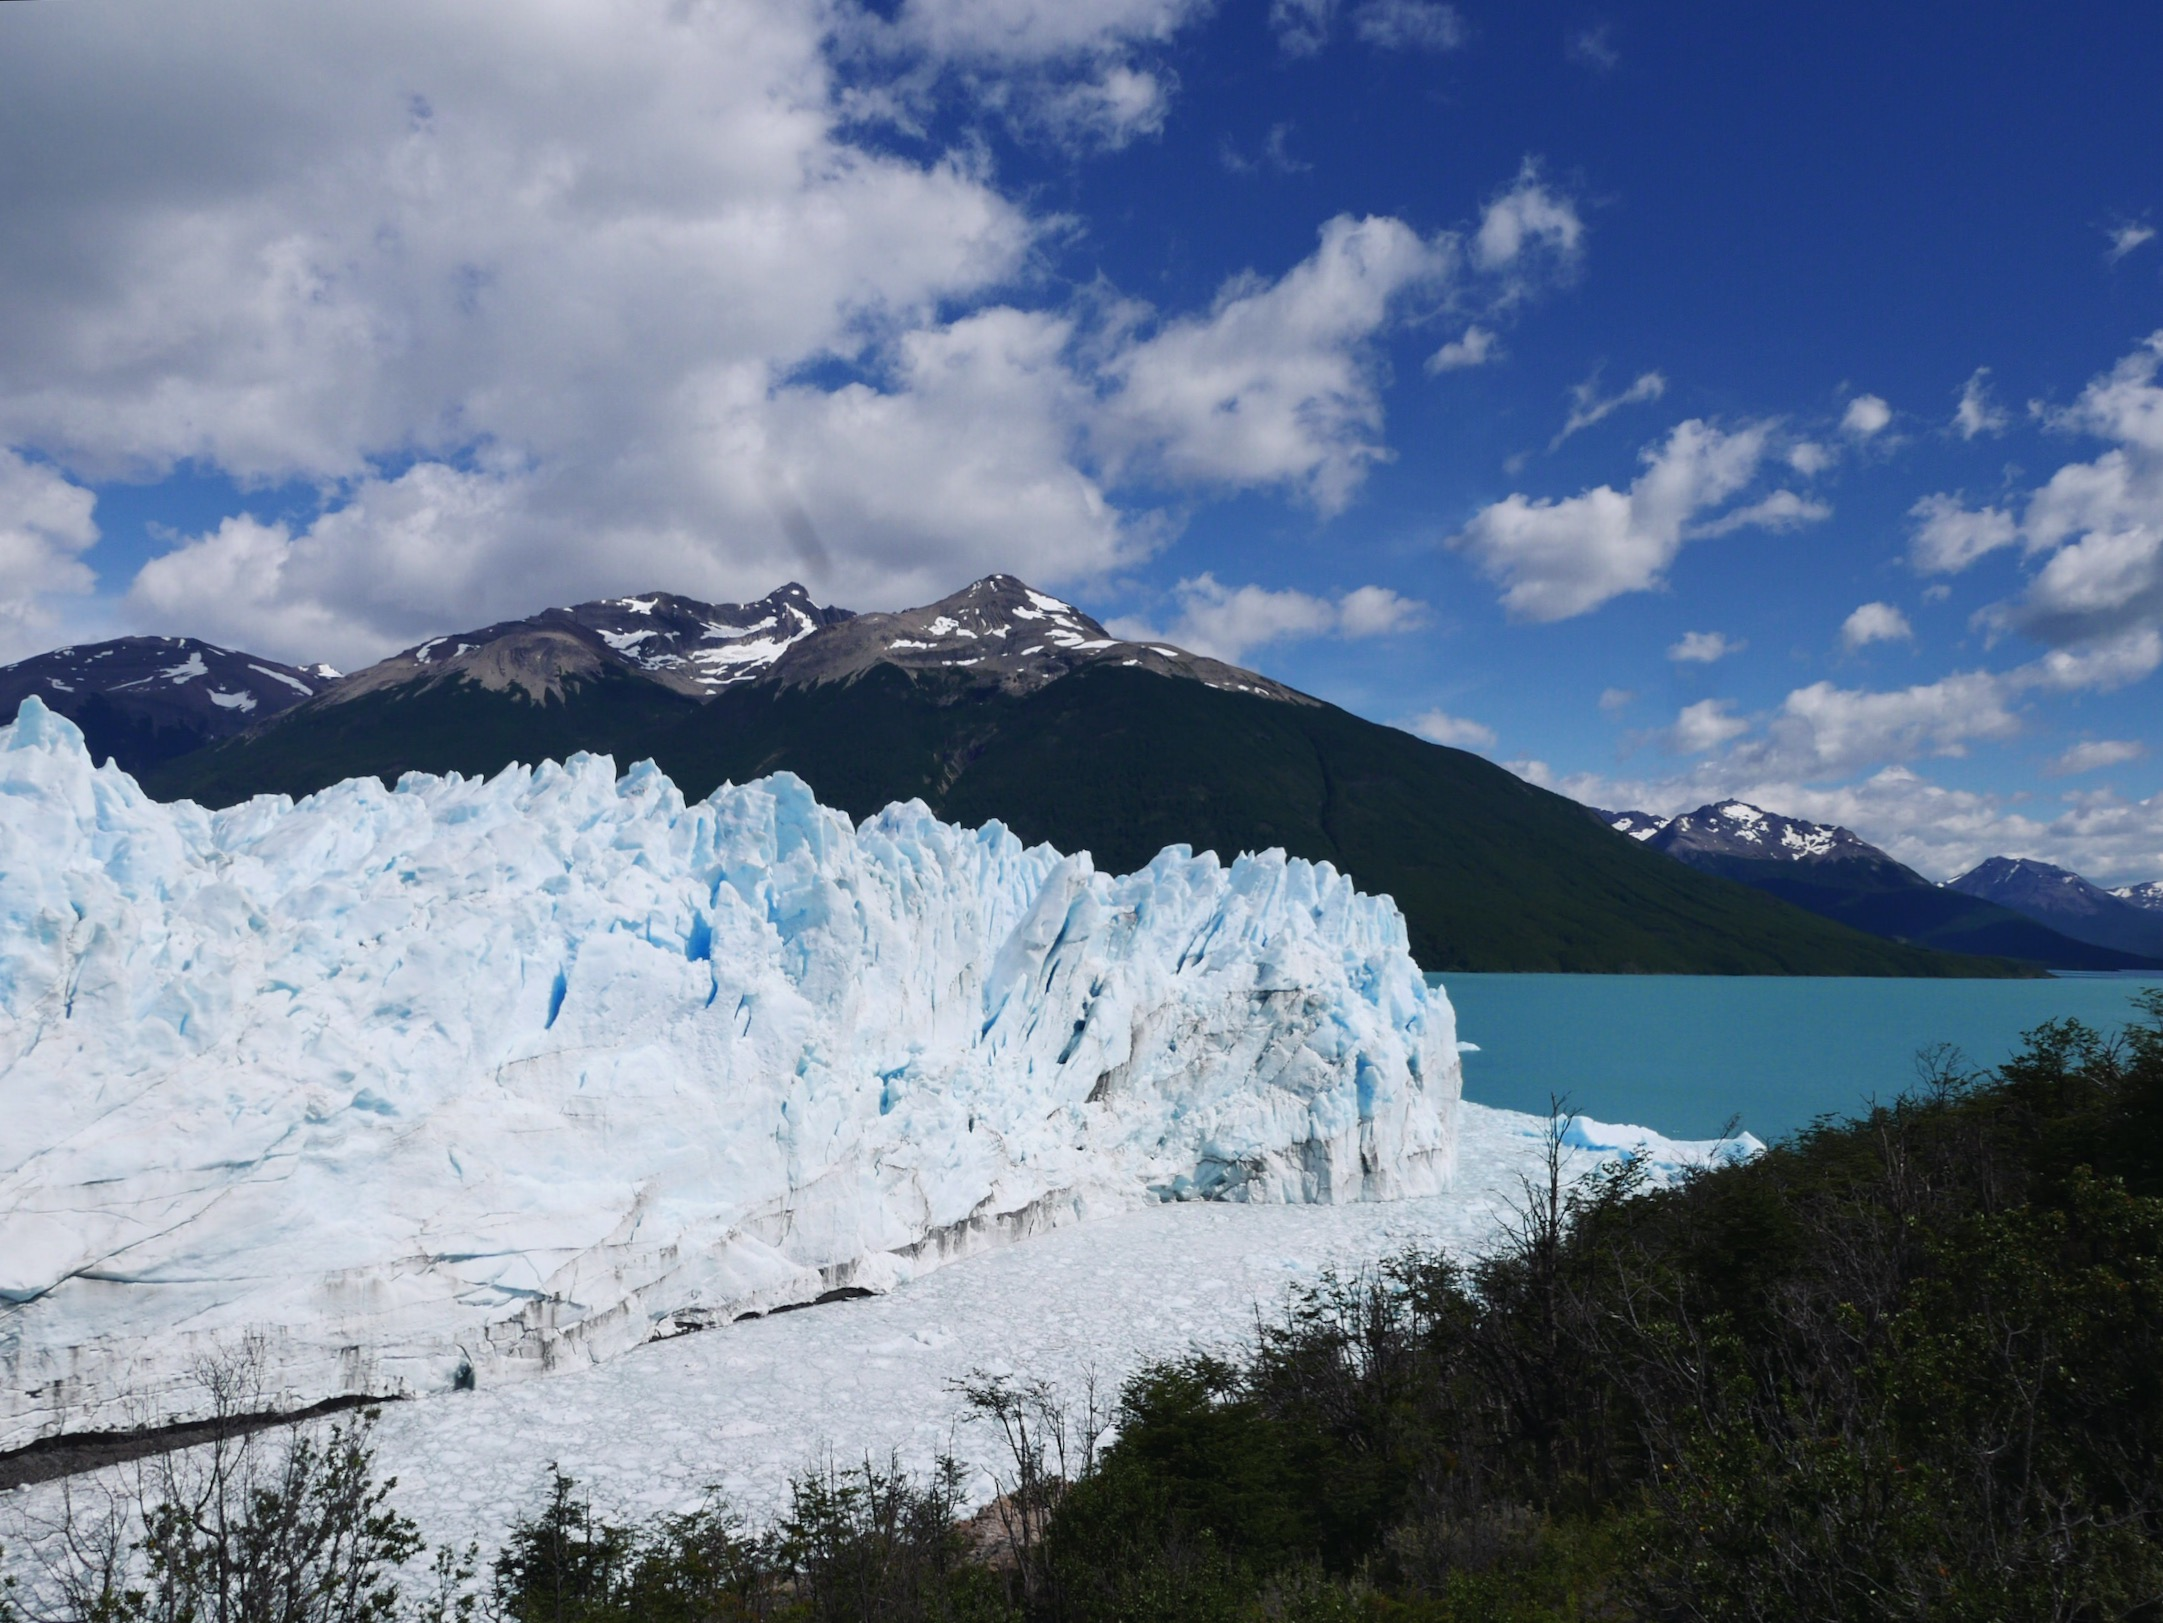 Perito Moreno is the only glacier in Patagonia that's actively advancing rather than disappearing. While, the exact reason for this is a matter of debate, it's still nice to see a bright white glacier rather than the hundreds of muddy, melting piles we've seen elsewhere.